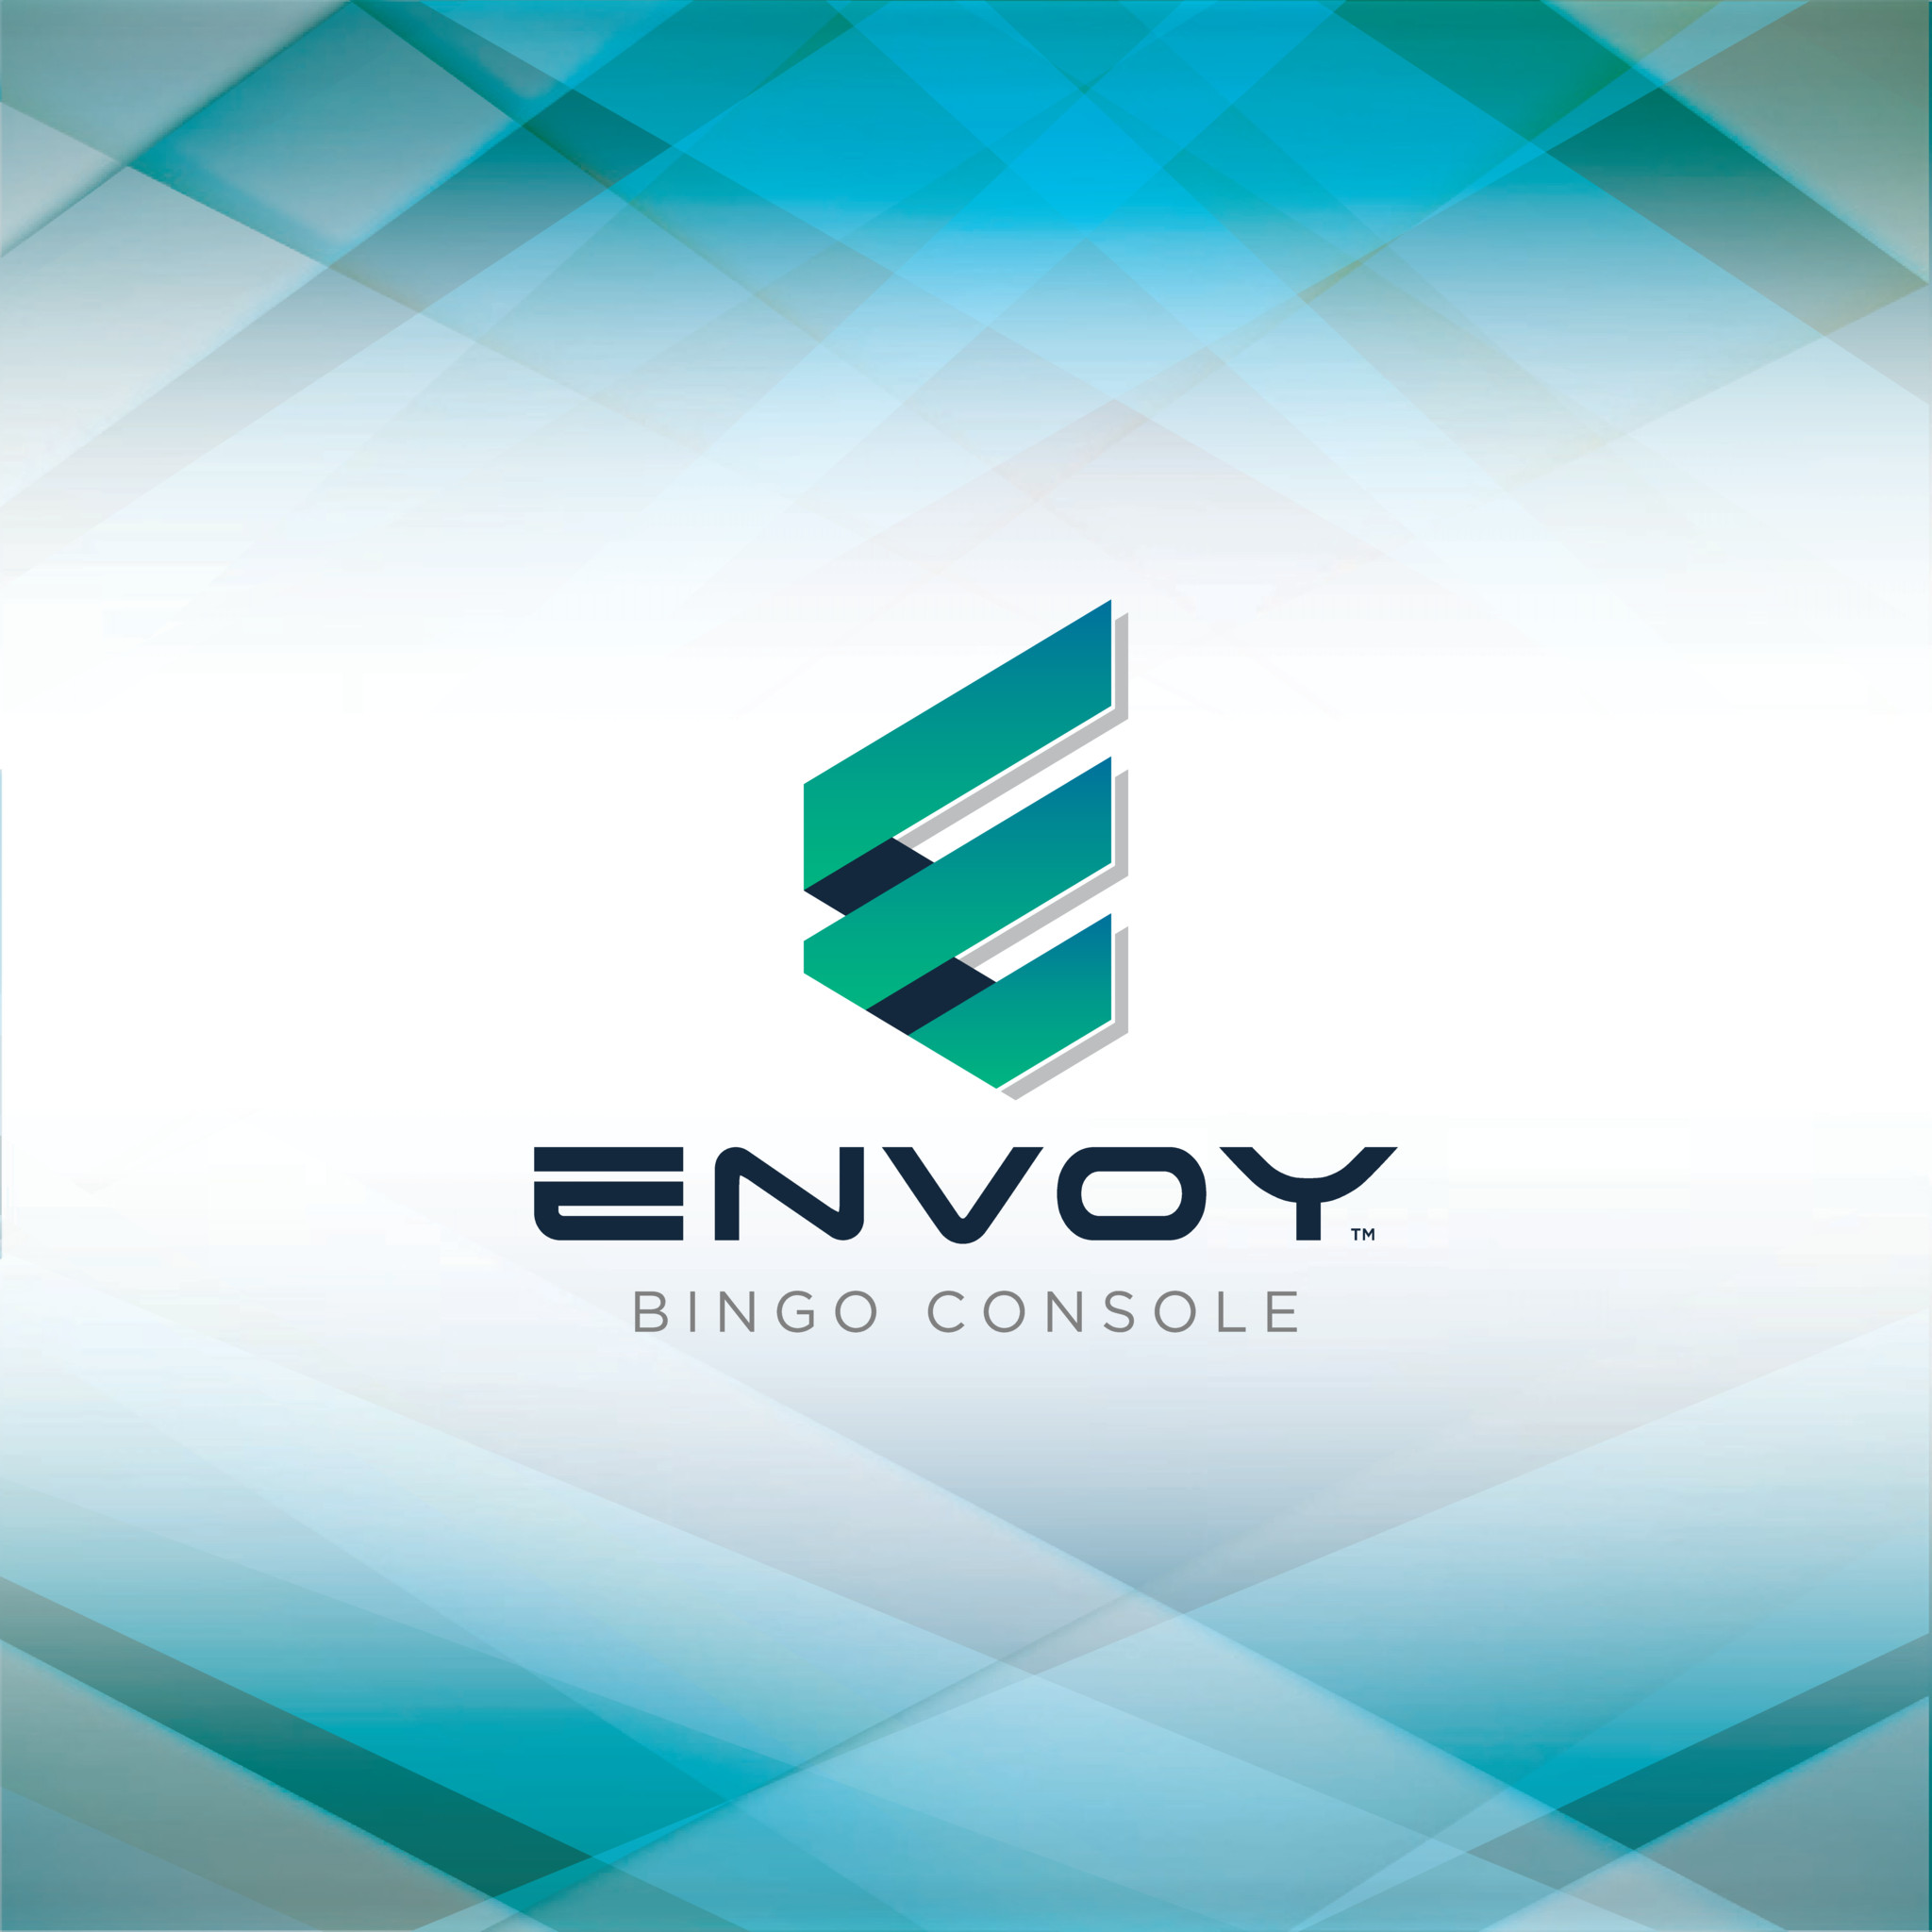 Envoy Bingo Console Brochure Promotional Materials/Equipment Flyers & Brochures